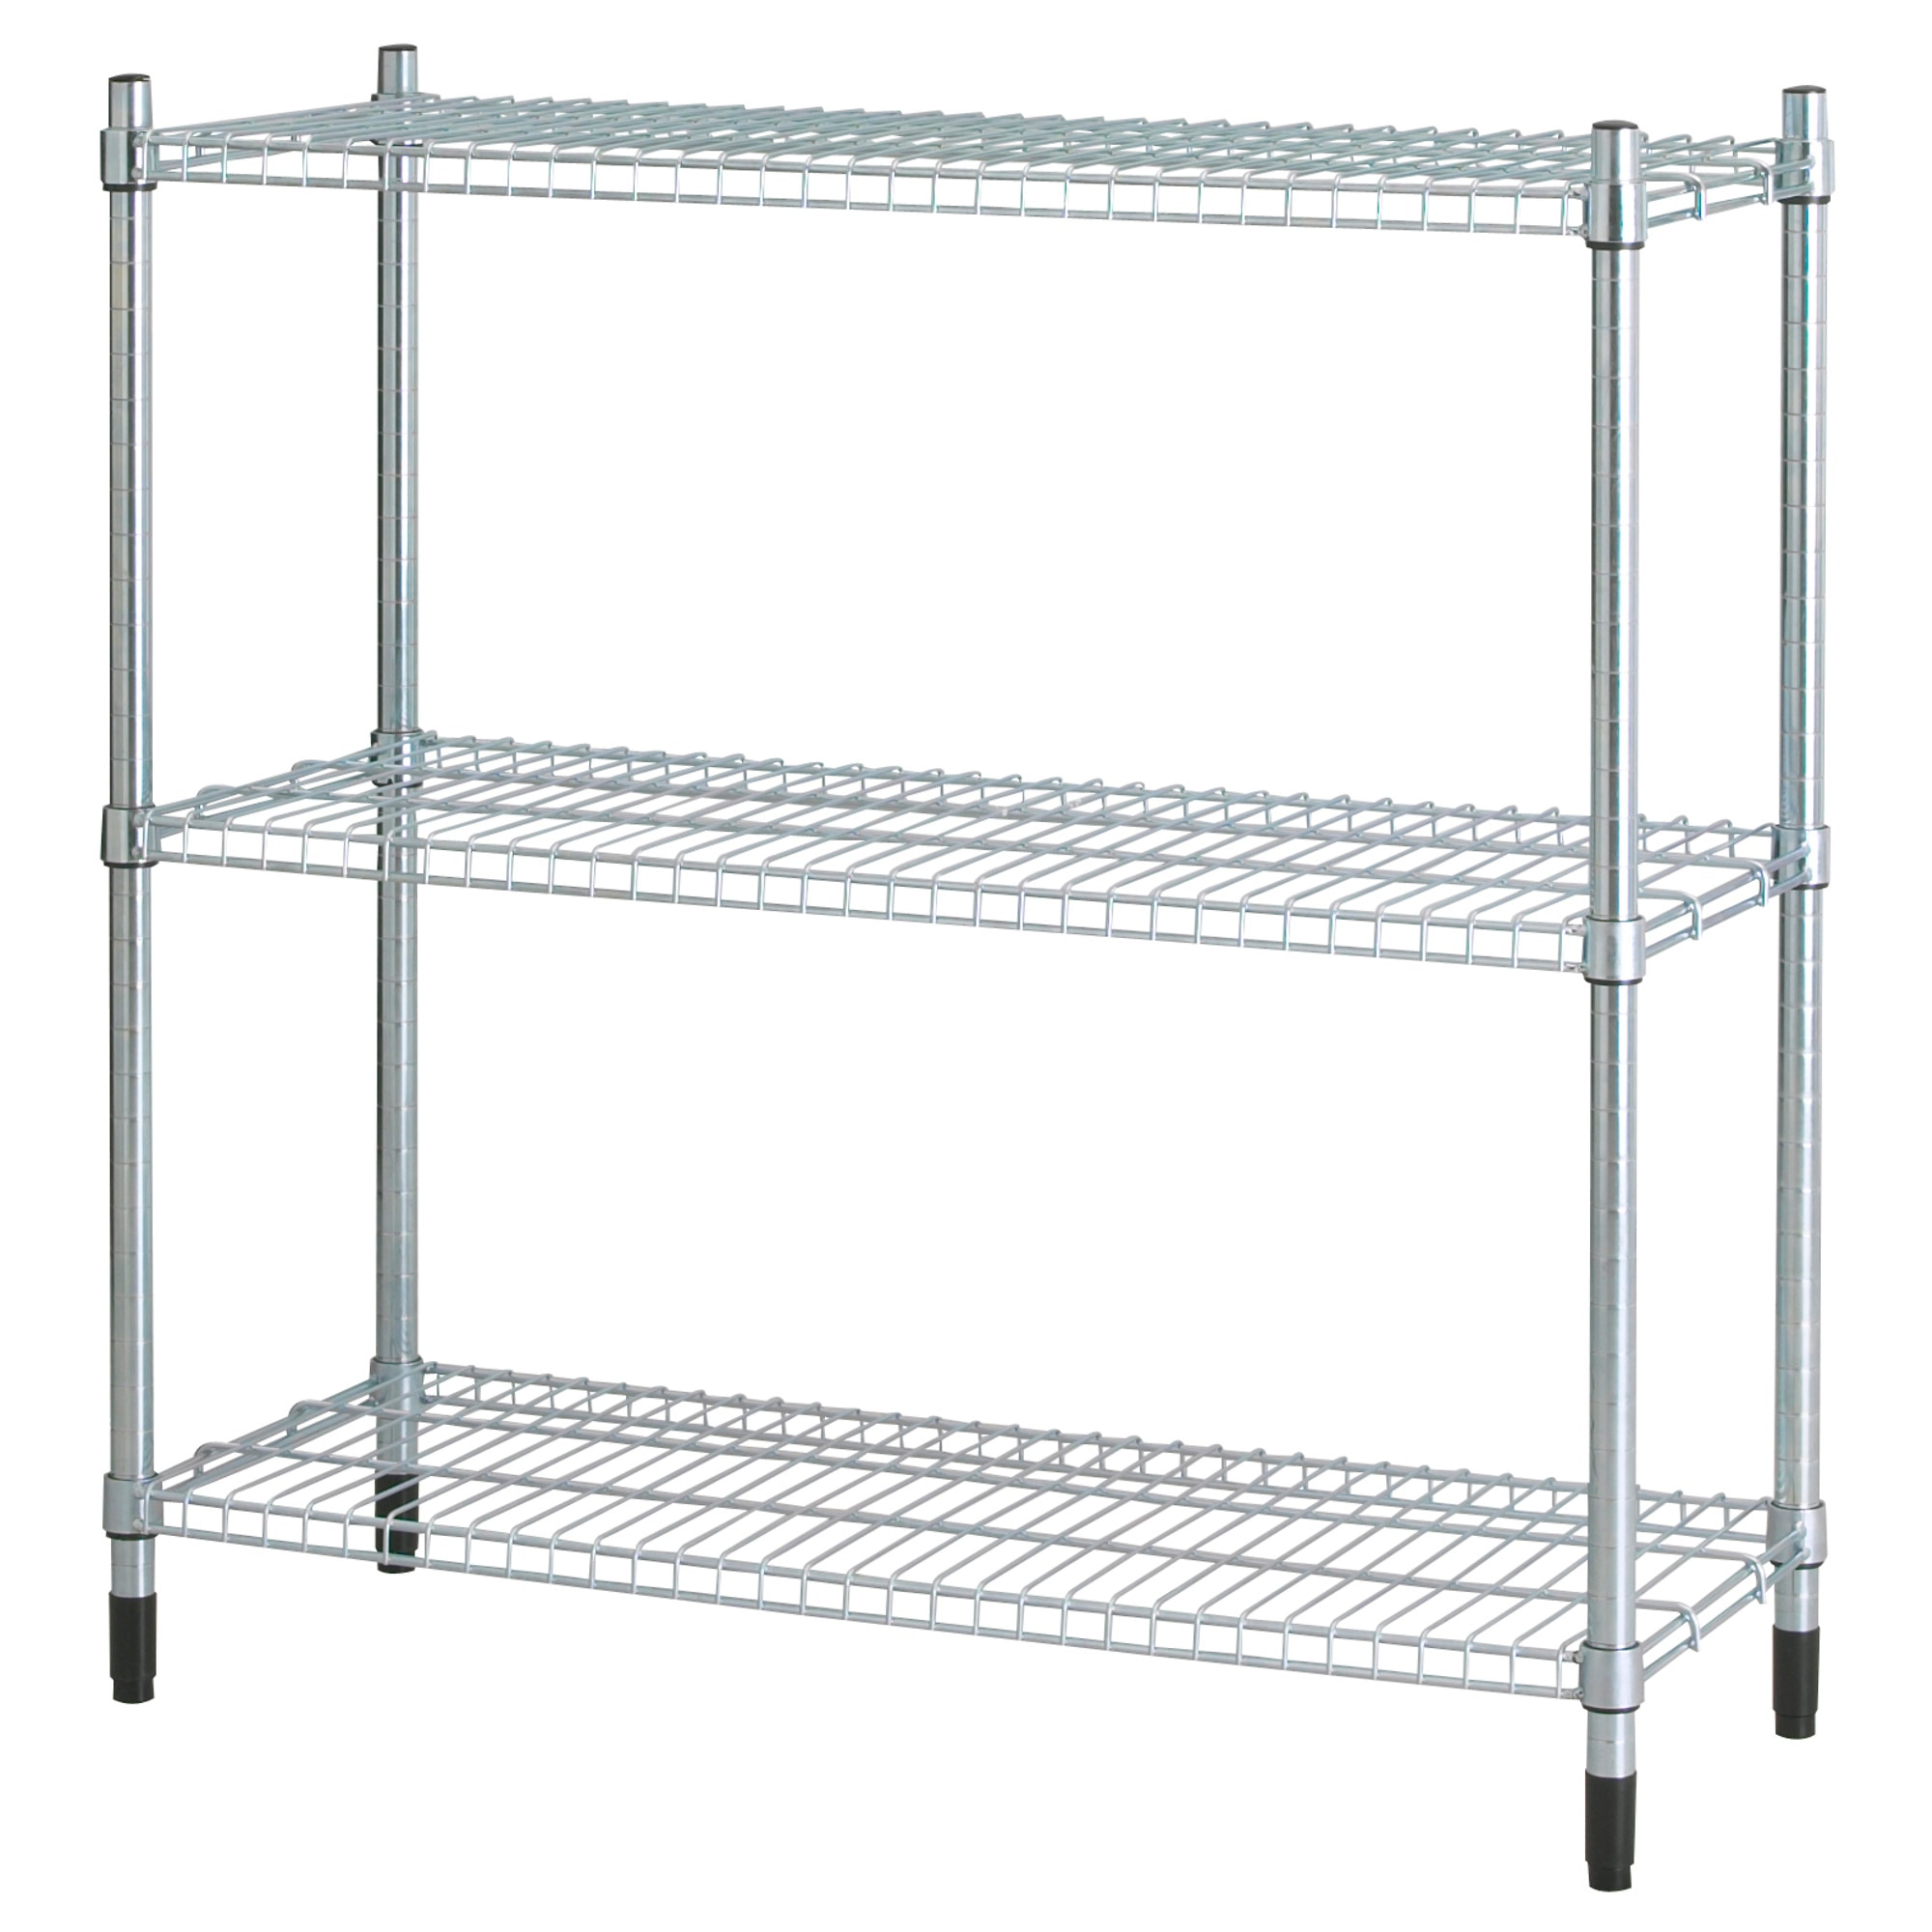 warehouse racks bar storage products industrial product pipe tubing cantilever rack in